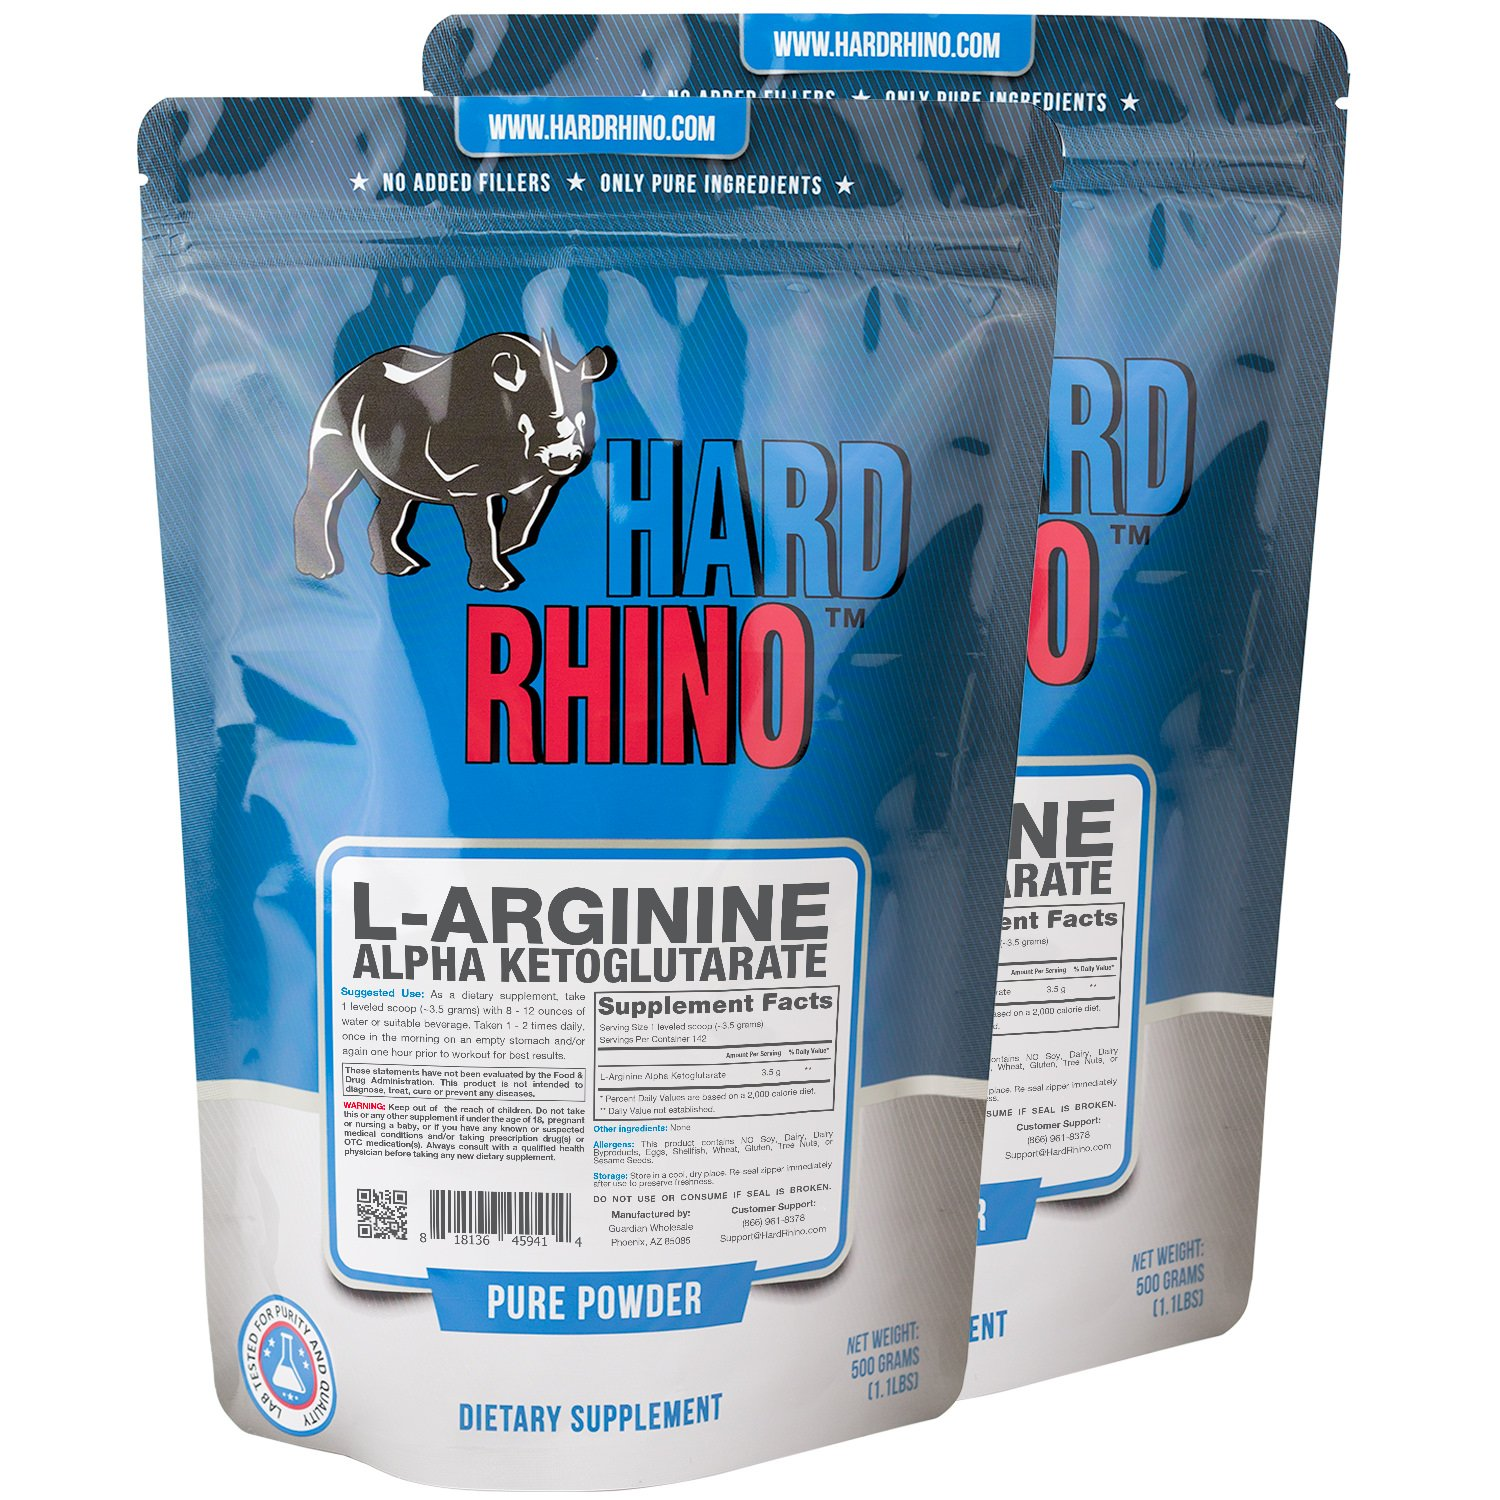 Hard Rhino L-Arginine Alpha Ketoglutarate AAKG Powder, 1 Kilogram 2.2 Lbs , Unflavored, Lab-Tested, Scoop Included